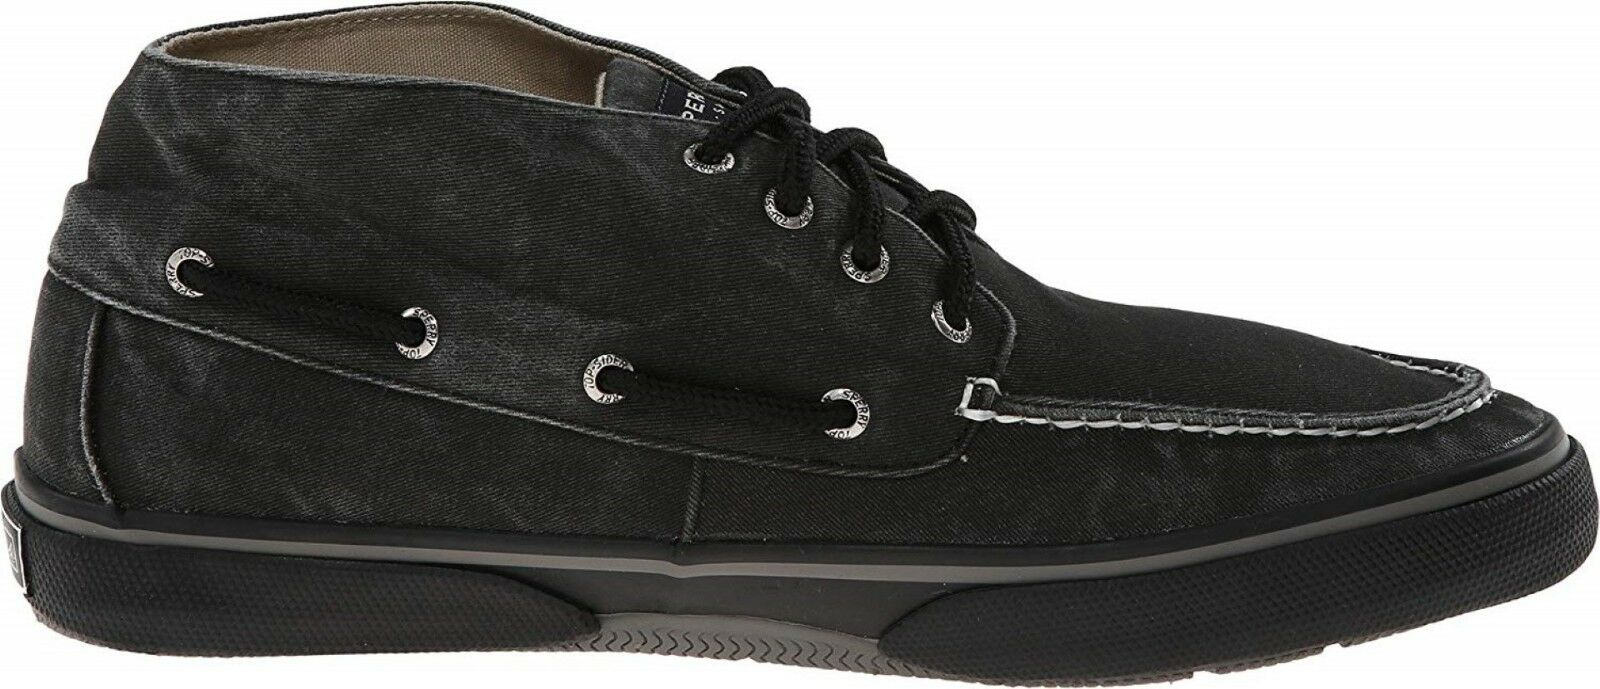 Sperry Top Sider Men's Boat shoes Halyard Chukka Boat shoes